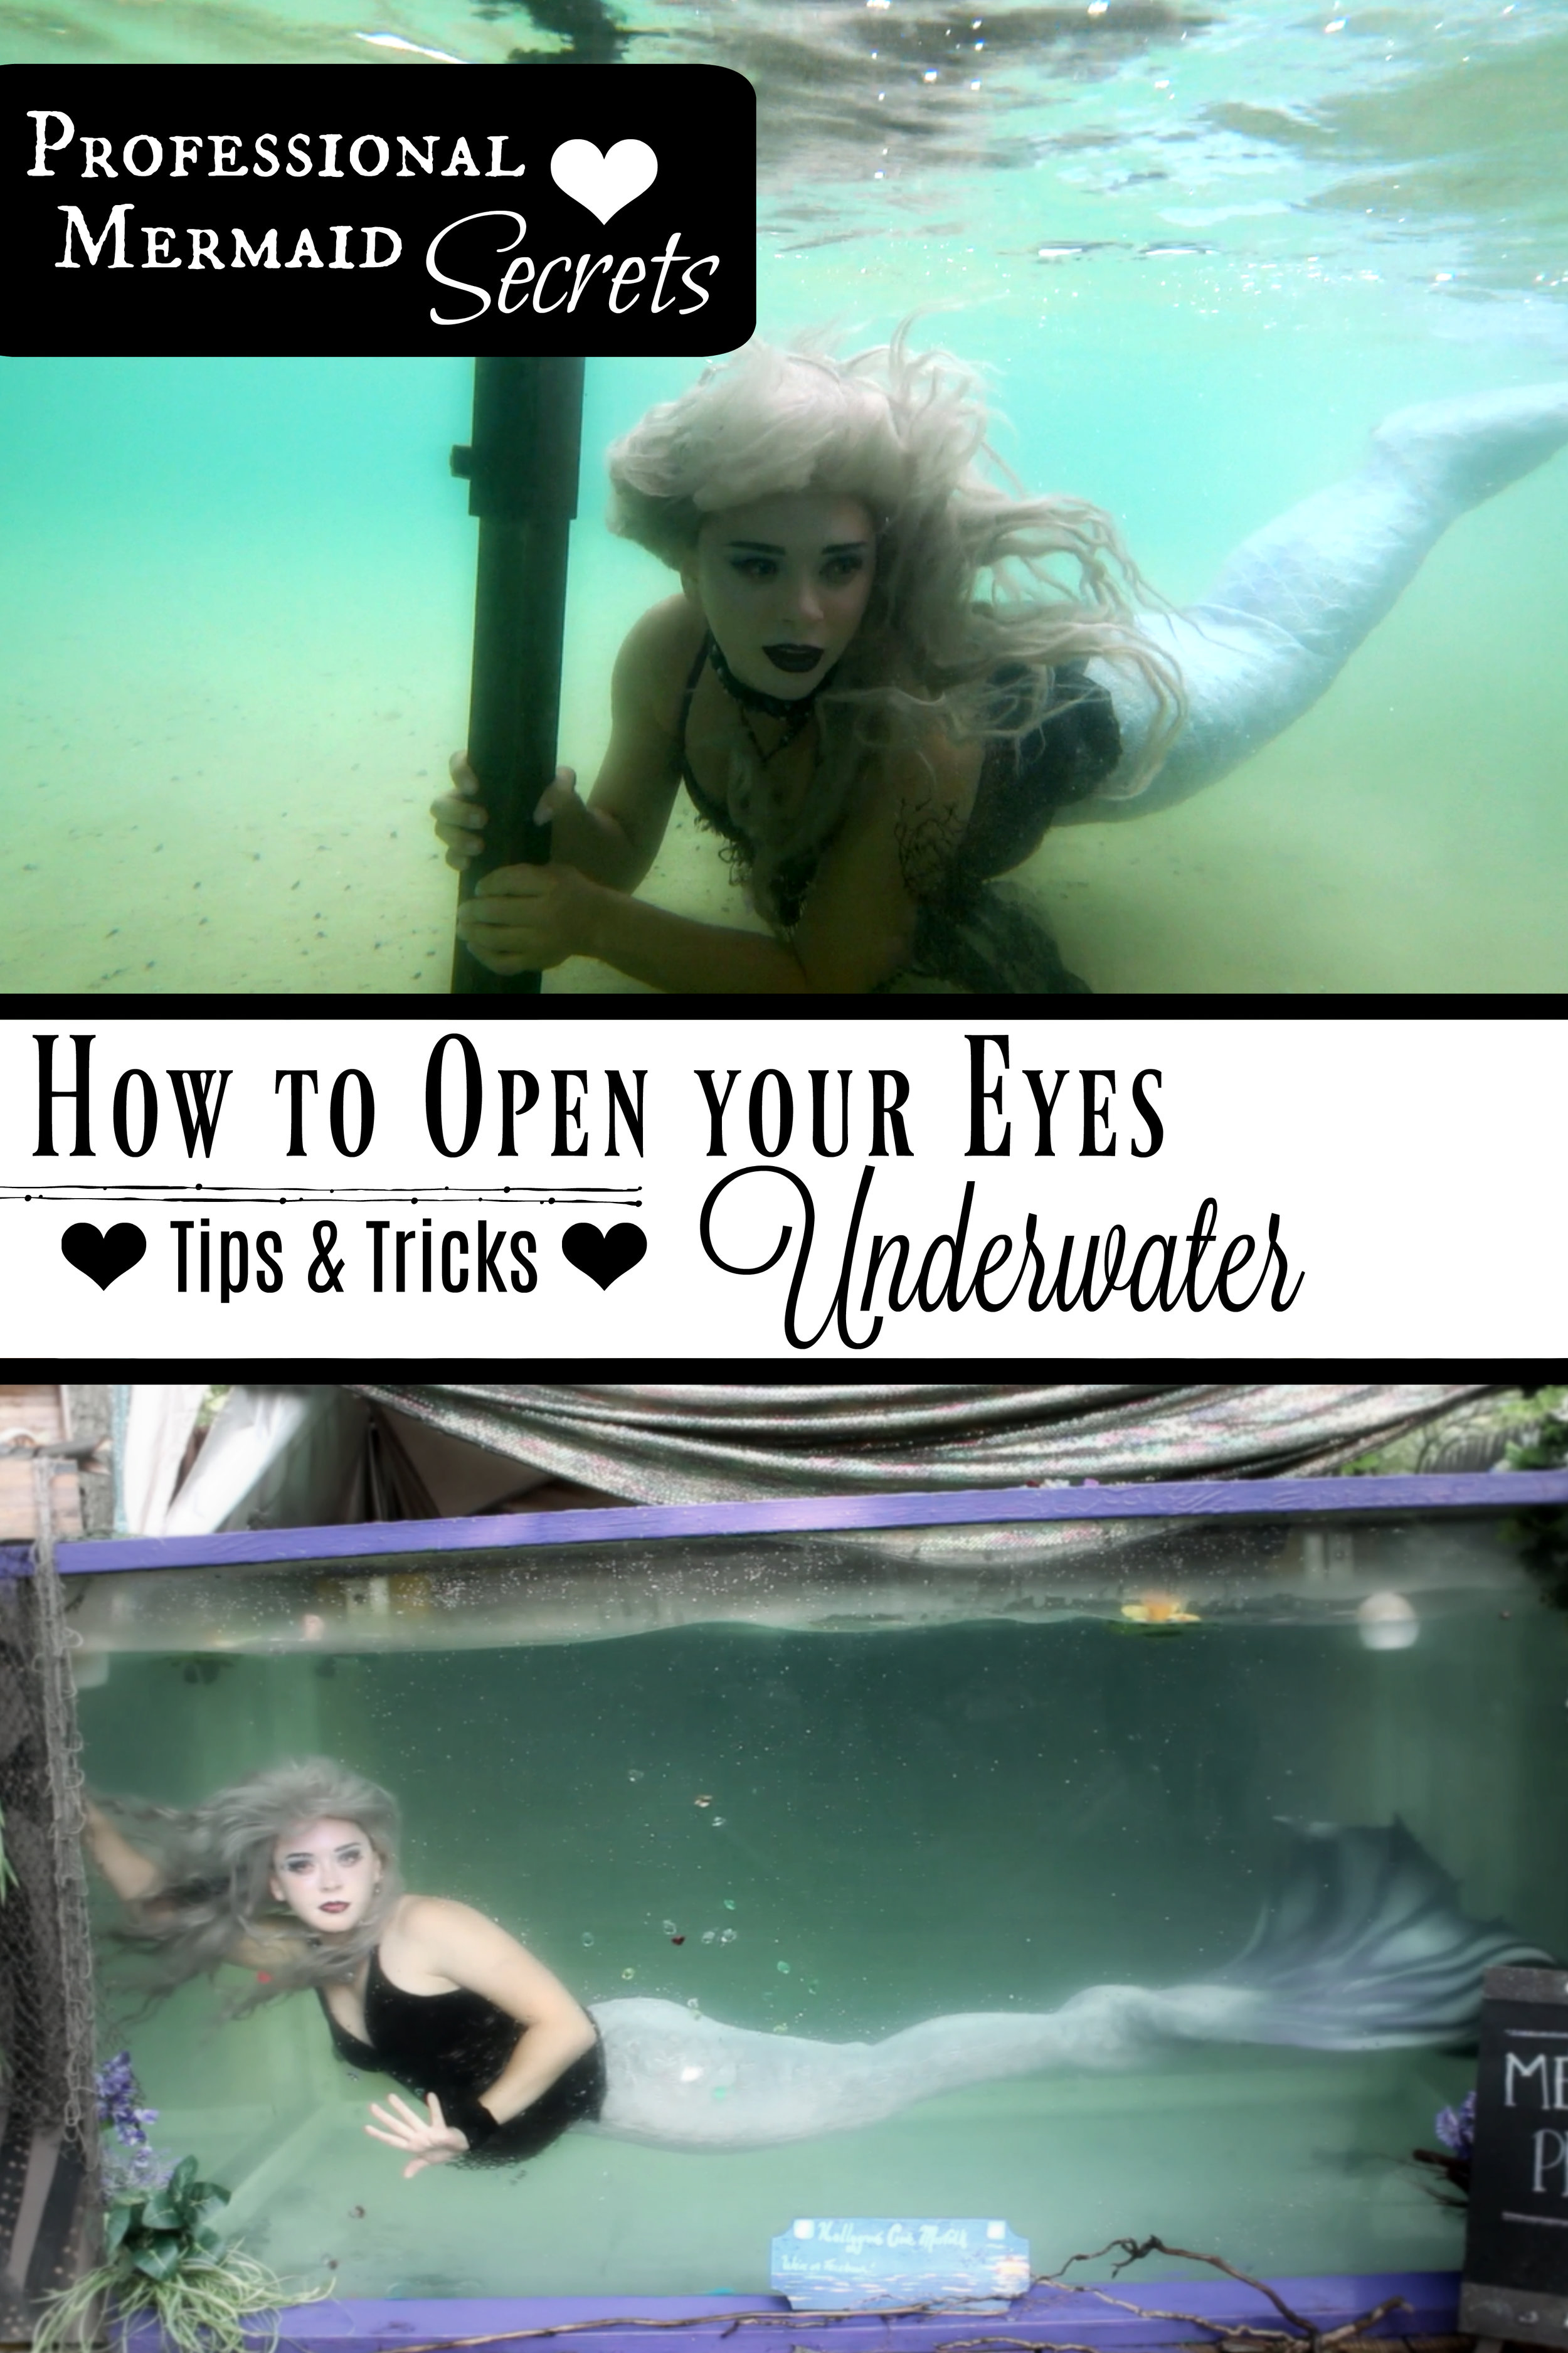 How to Open your Eyes Underwater like a Professional Mermaid- Tips & Tricks for Reducing Burning and Irritation after a swim in the pool, lake or ocean. Find the BEST eye drops, ointments, gels, supplements AND lifestyle changes to help keep you eyes happy! ♥ Watch the video AND read the blog post for more info. Click to read!